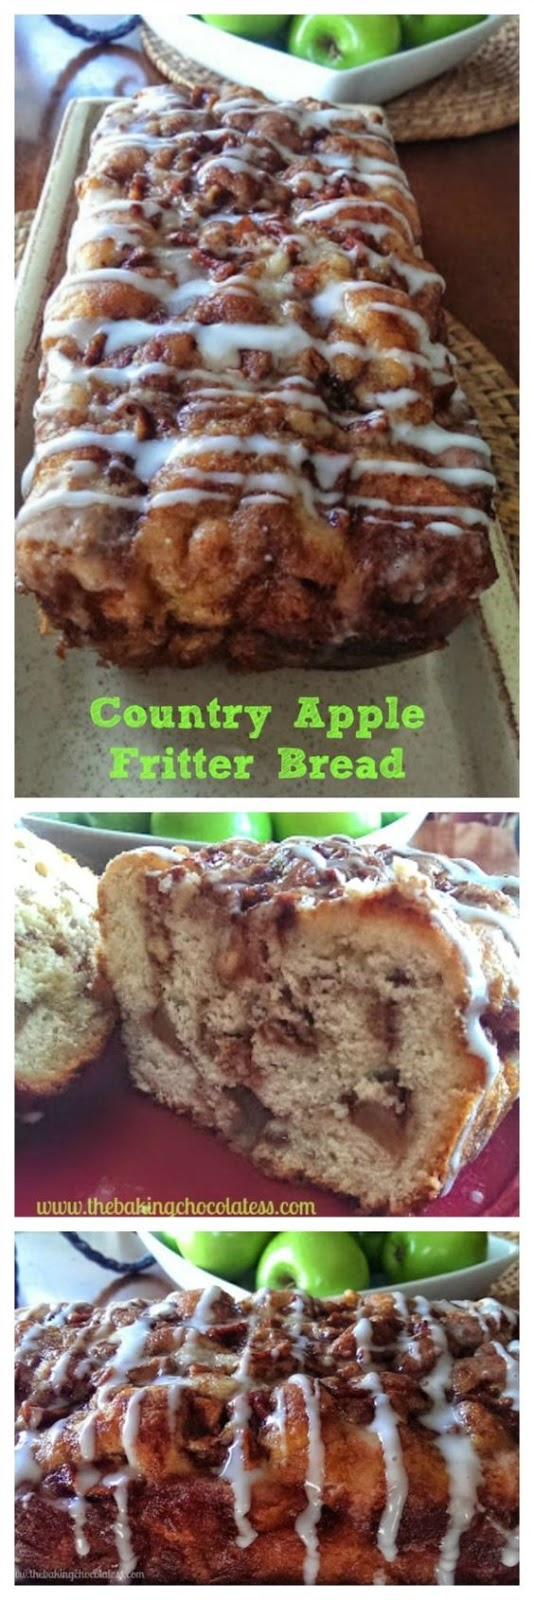 ★★★★☆ 1261 ratings ⋅ Awesome Country Apple Fritter Bread Recipe  #HEALTHYFOOD #EASYRECIPES #DINNER #LAUCH #DELICIOUS #EASY #HOLIDAYS #RECIPE #DESSERTS #SPECIALDIET #WORLDCUISINE #CAKE #APPETIZERS #HEALTHYRECIPES #DRINKS #COOKINGMETHOD #ITALIANRECIPES #MEAT #VEGANRECIPES #COOKIES #PASTA #FRUIT #SALAD #SOUPAPPETIZERS #NONALCOHOLICDRINKS #MEALPLANNING #VEGETABLES #SOUP #PASTRY #CHOCOLATE #DAIRY #ALCOHOLICDRINKS #BULGURSALAD #BAKING #SNACKS #BEEFRECIPES #MEATAPPETIZERS #MEXICANRECIPES #BREAD #ASIANRECIPES #SEAFOODAPPETIZERS #MUFFINS #BREAKFASTANDBRUNCH #CONDIMENTS #CUPCAKES #CHEESE #CHICKENRECIPES #PIE #COFFEE #NOBAKEDESSERTS #HEALTHYSNACKS #SEAFOOD #GRAIN #LUNCHESDINNERS #MEXICAN #QUICKBREAD #LIQUOR